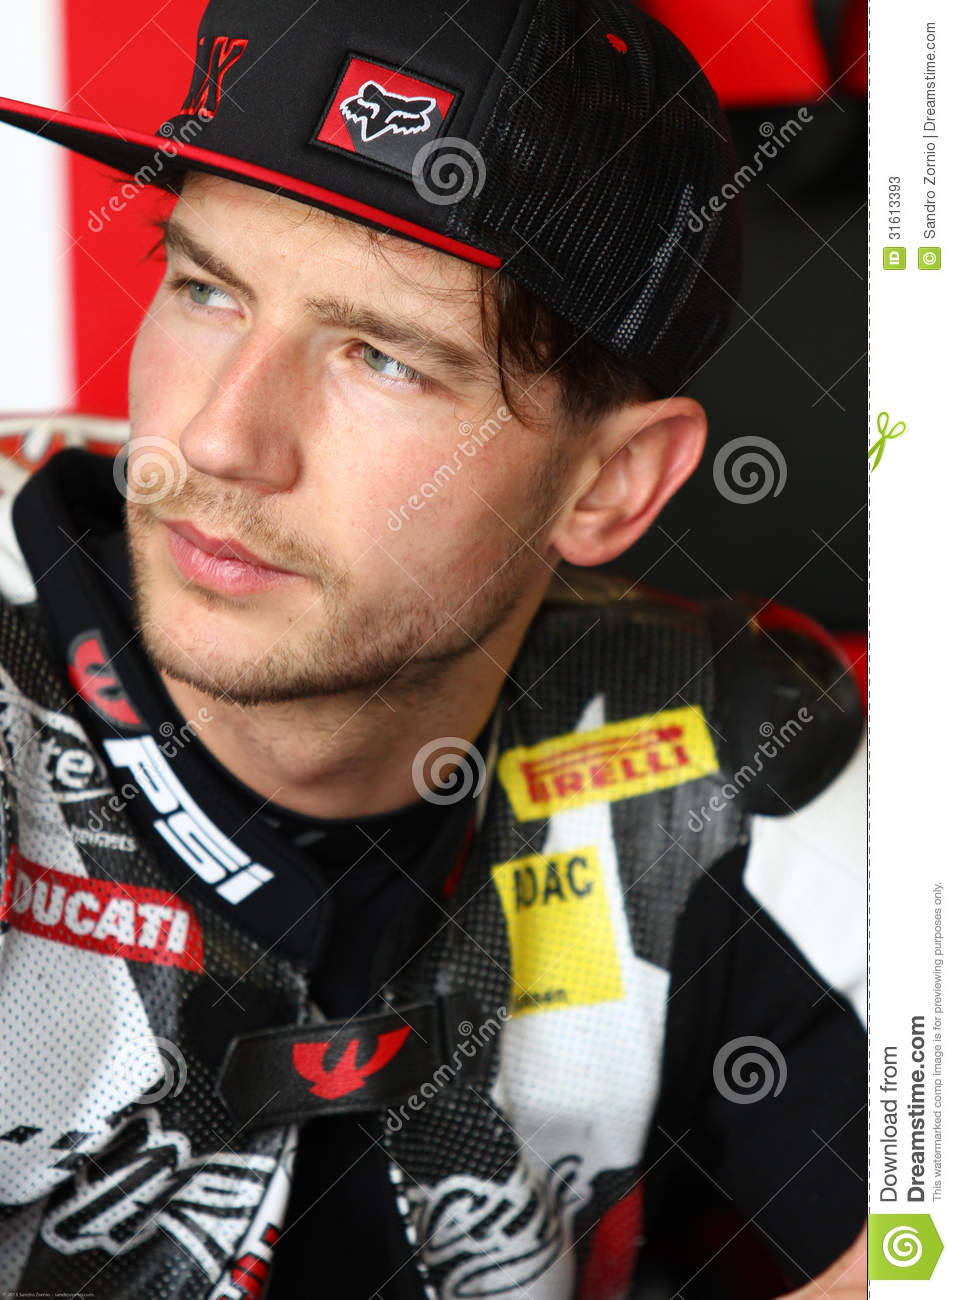 Max Neukirchner #27 on Ducati 1199 Panigale R MR-Racing Superbike WSBK